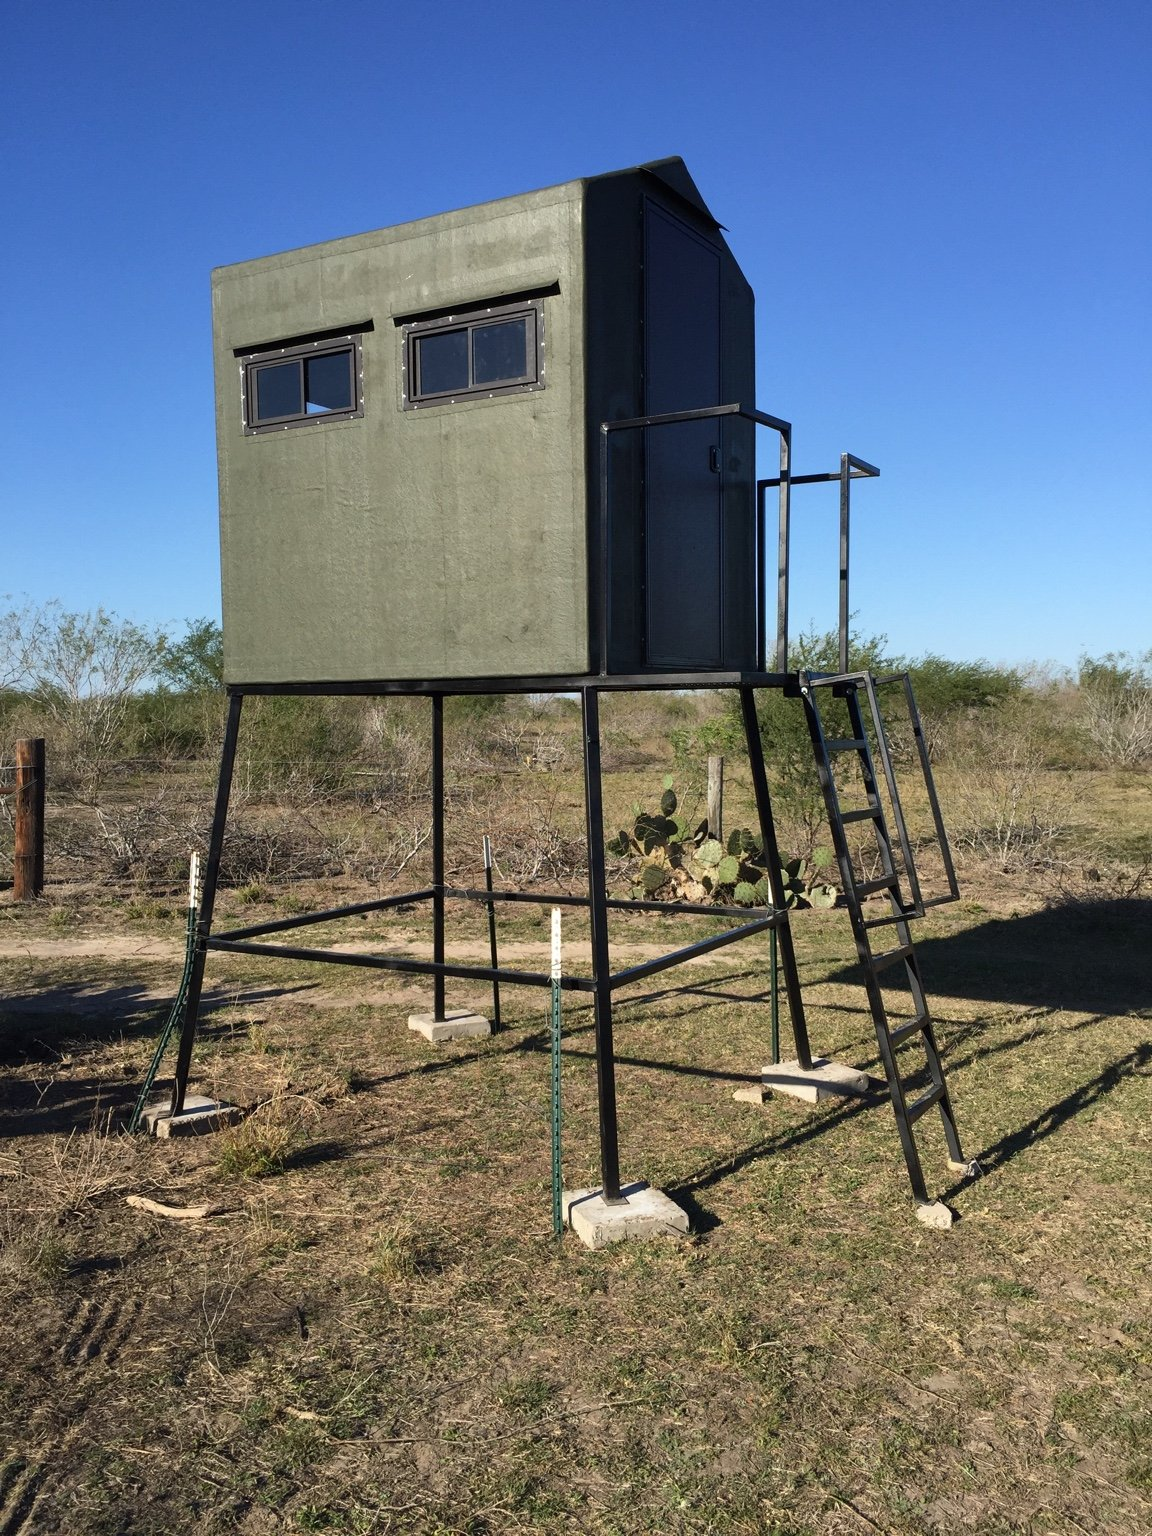 box blind size help archive texasbowhunter com community box blind size help archive texasbowhunter com community discussion forums